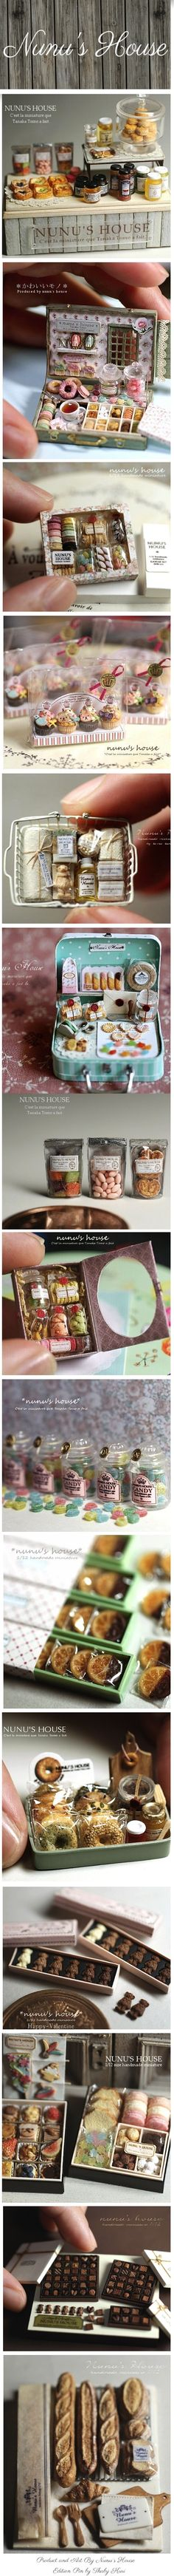 Miniature Packaging - By Nunu's House Miniature Houses, Miniature Food, Miniature Dolls, Polymer Clay Miniatures, Dollhouse Miniatures, Crea Fimo, Tiny World, Mini Things, Clay Charms